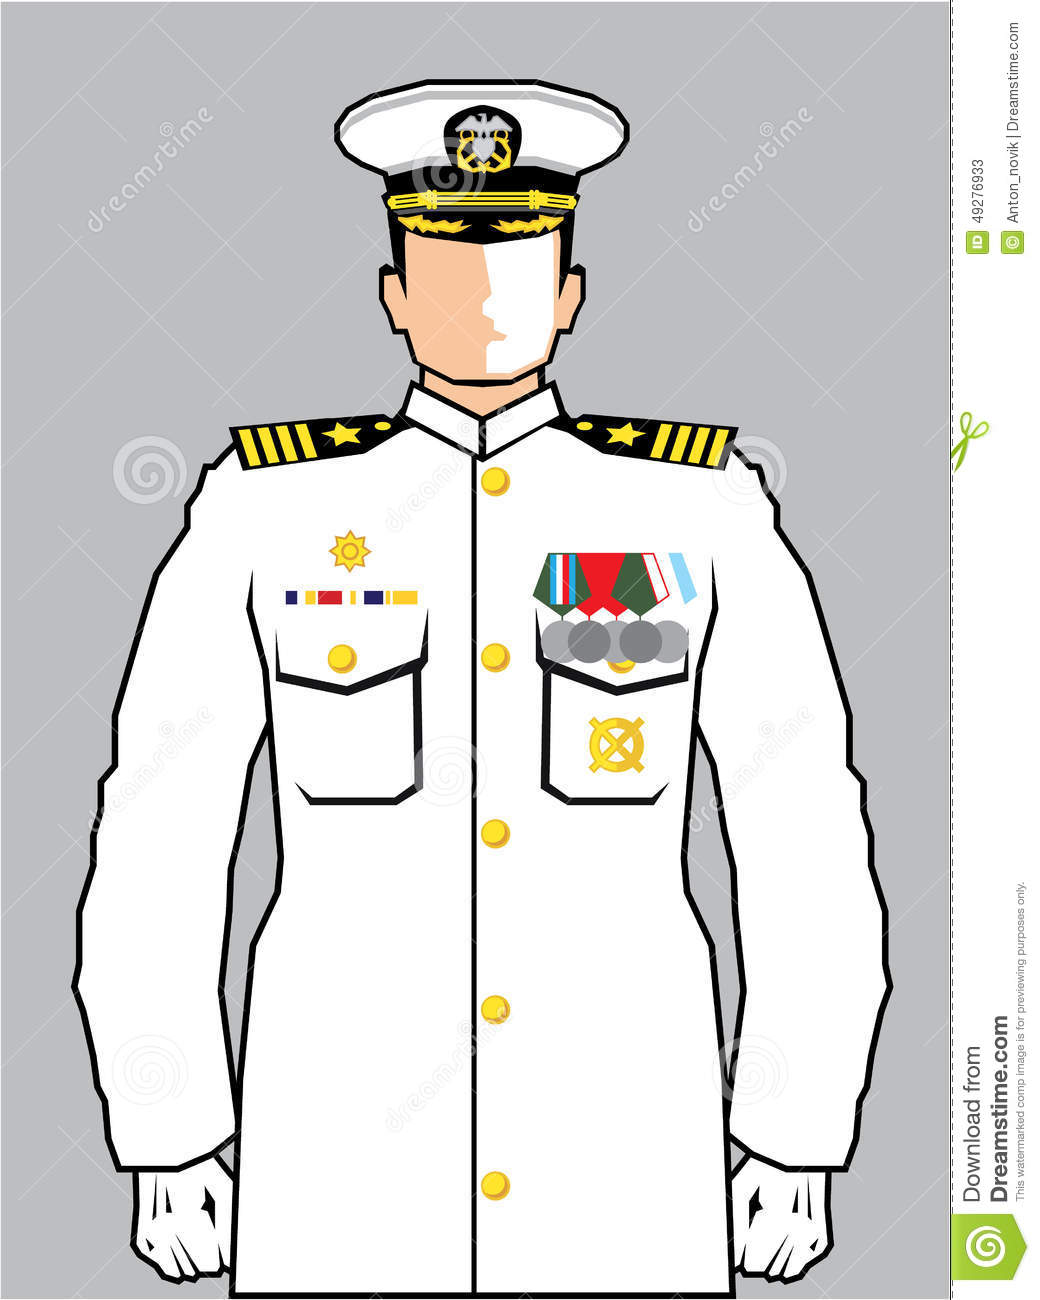 Navy Officer illustration clip-art eps.